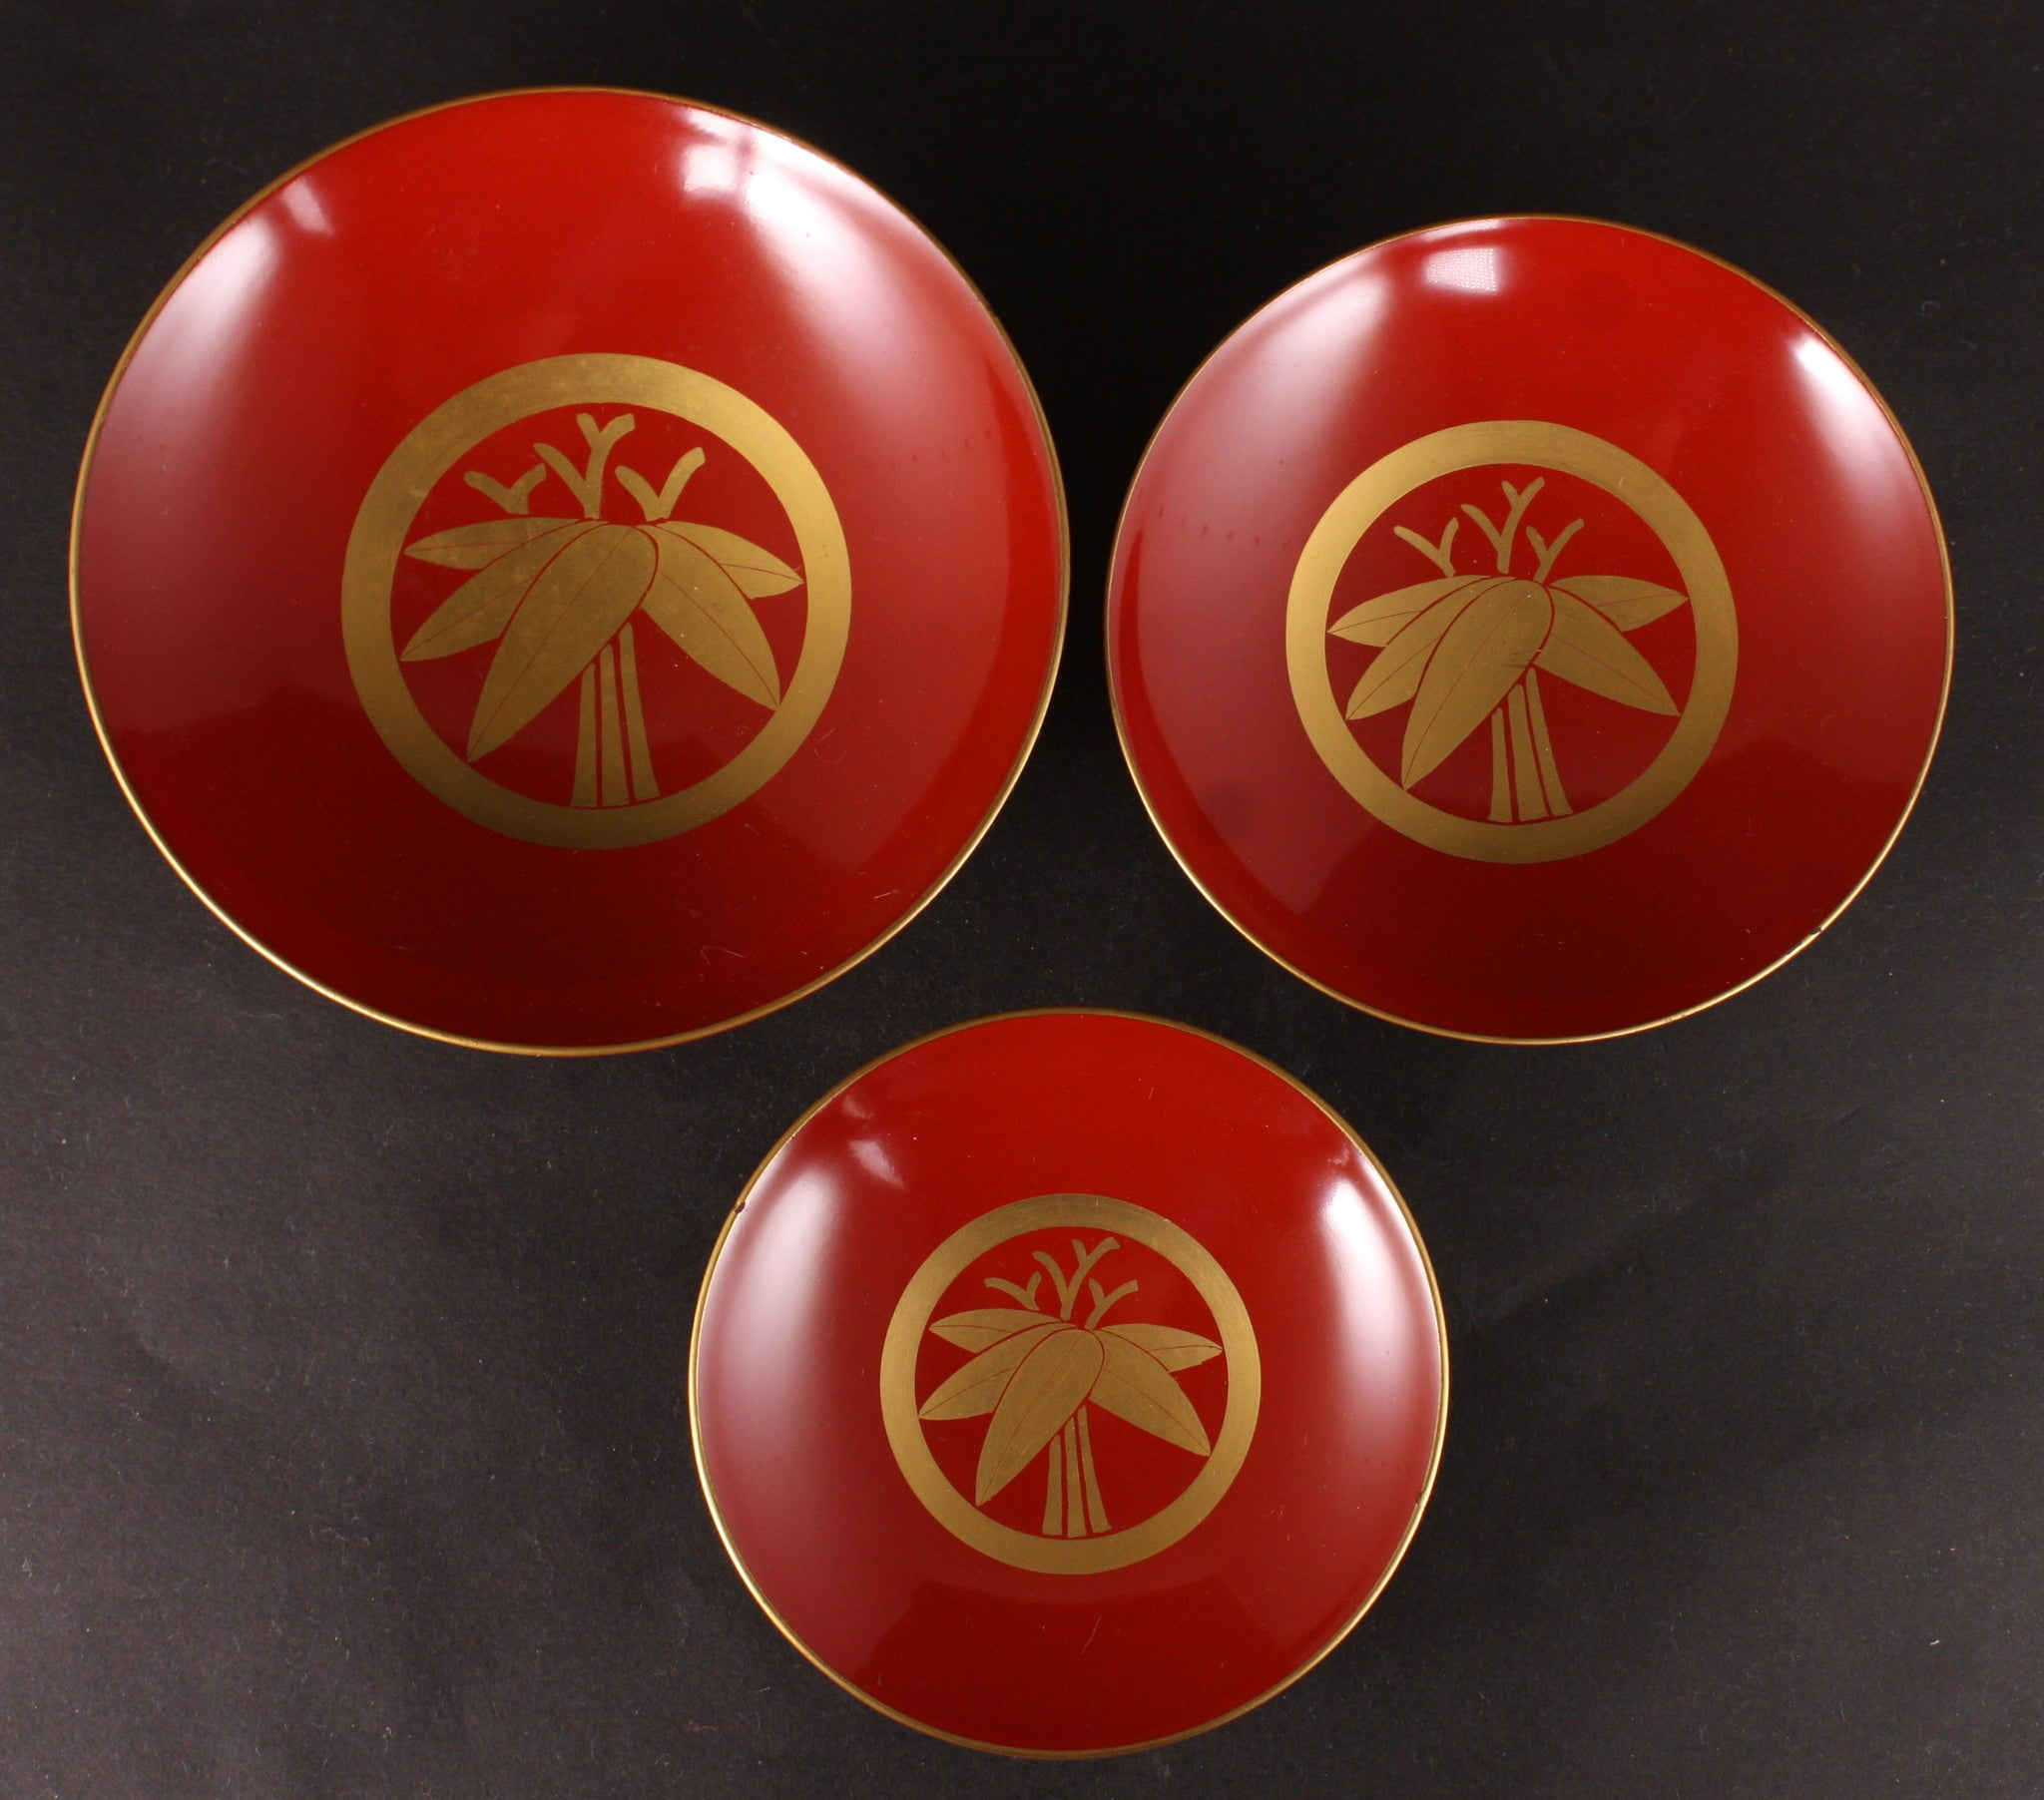 Very Rare Antique Japanese Battleship Haruna 3rd Turret Commemoration Lacquer Sake Cup Set